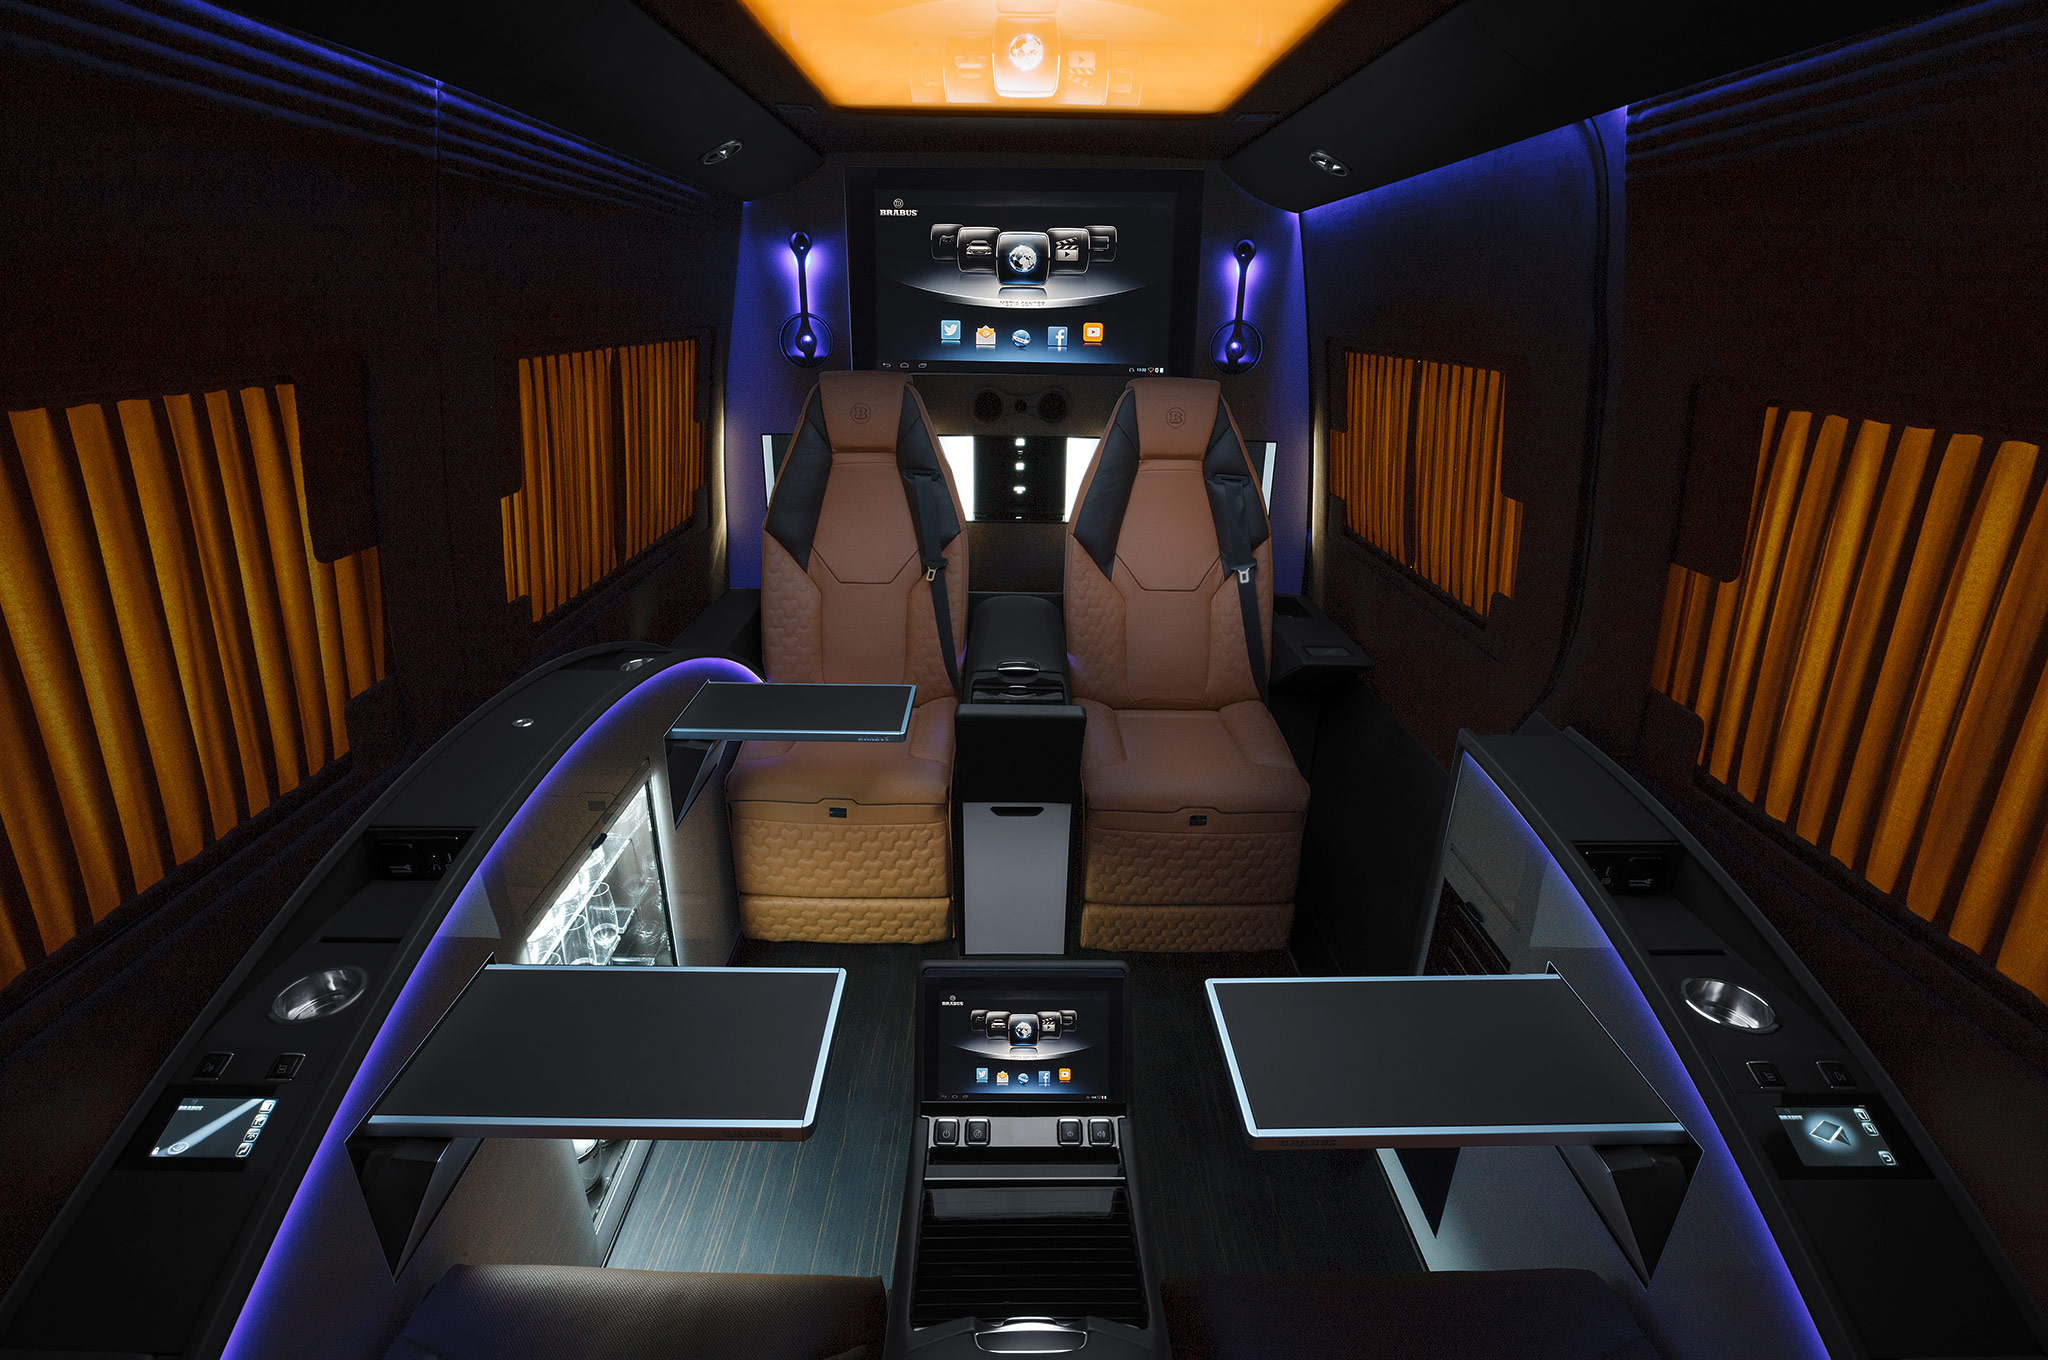 ' ' from the web at 'http://st.automobilemag.com/uploads/sites/11/2014/08/Brabus-Mercedes-Benz-Sprinter-Business-Lounge-seats-with-tables-night.jpg'